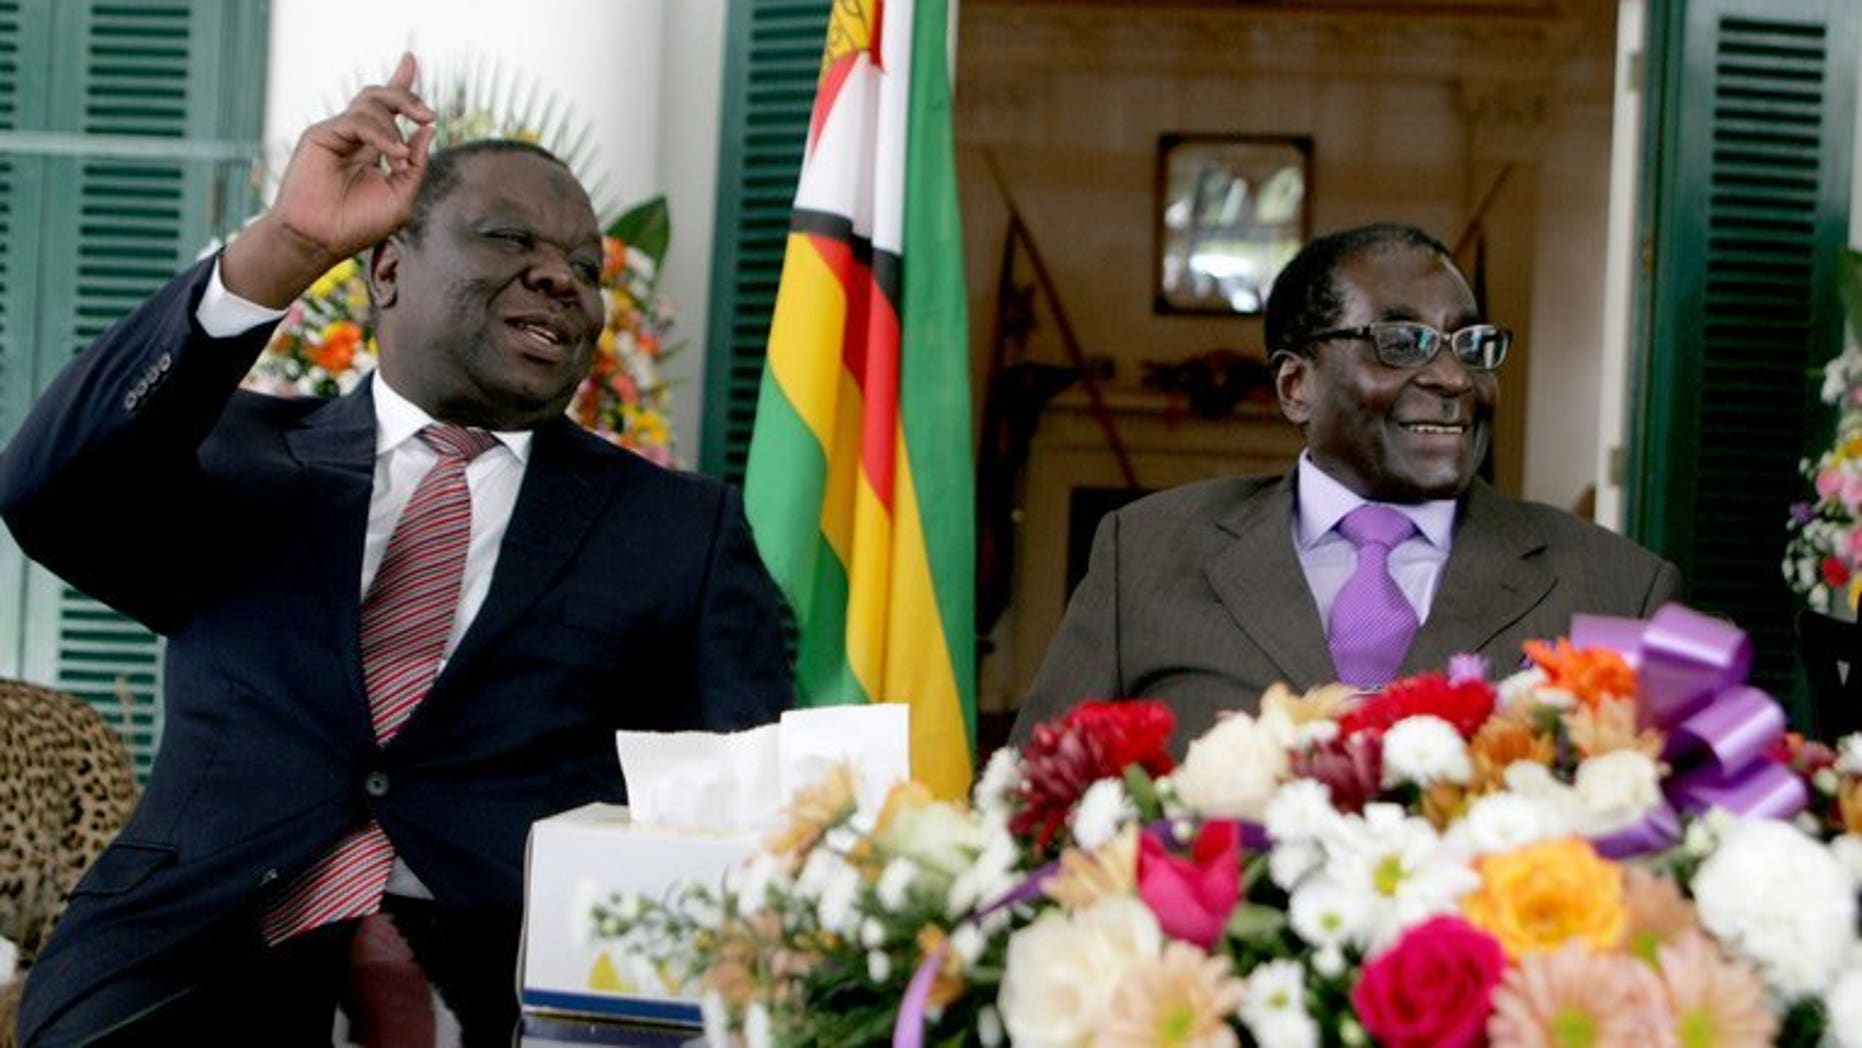 Zimbabwe's Prime Minister Morgan Tsvangirai (L) and President Robert Mugabe at the conclusion of the constitution-making process at State House on January 17, 2013 in Harare. Tsvangirai has filed an application with the country's top court for a delay of elections to allow key reforms to take effect, court papers showed.